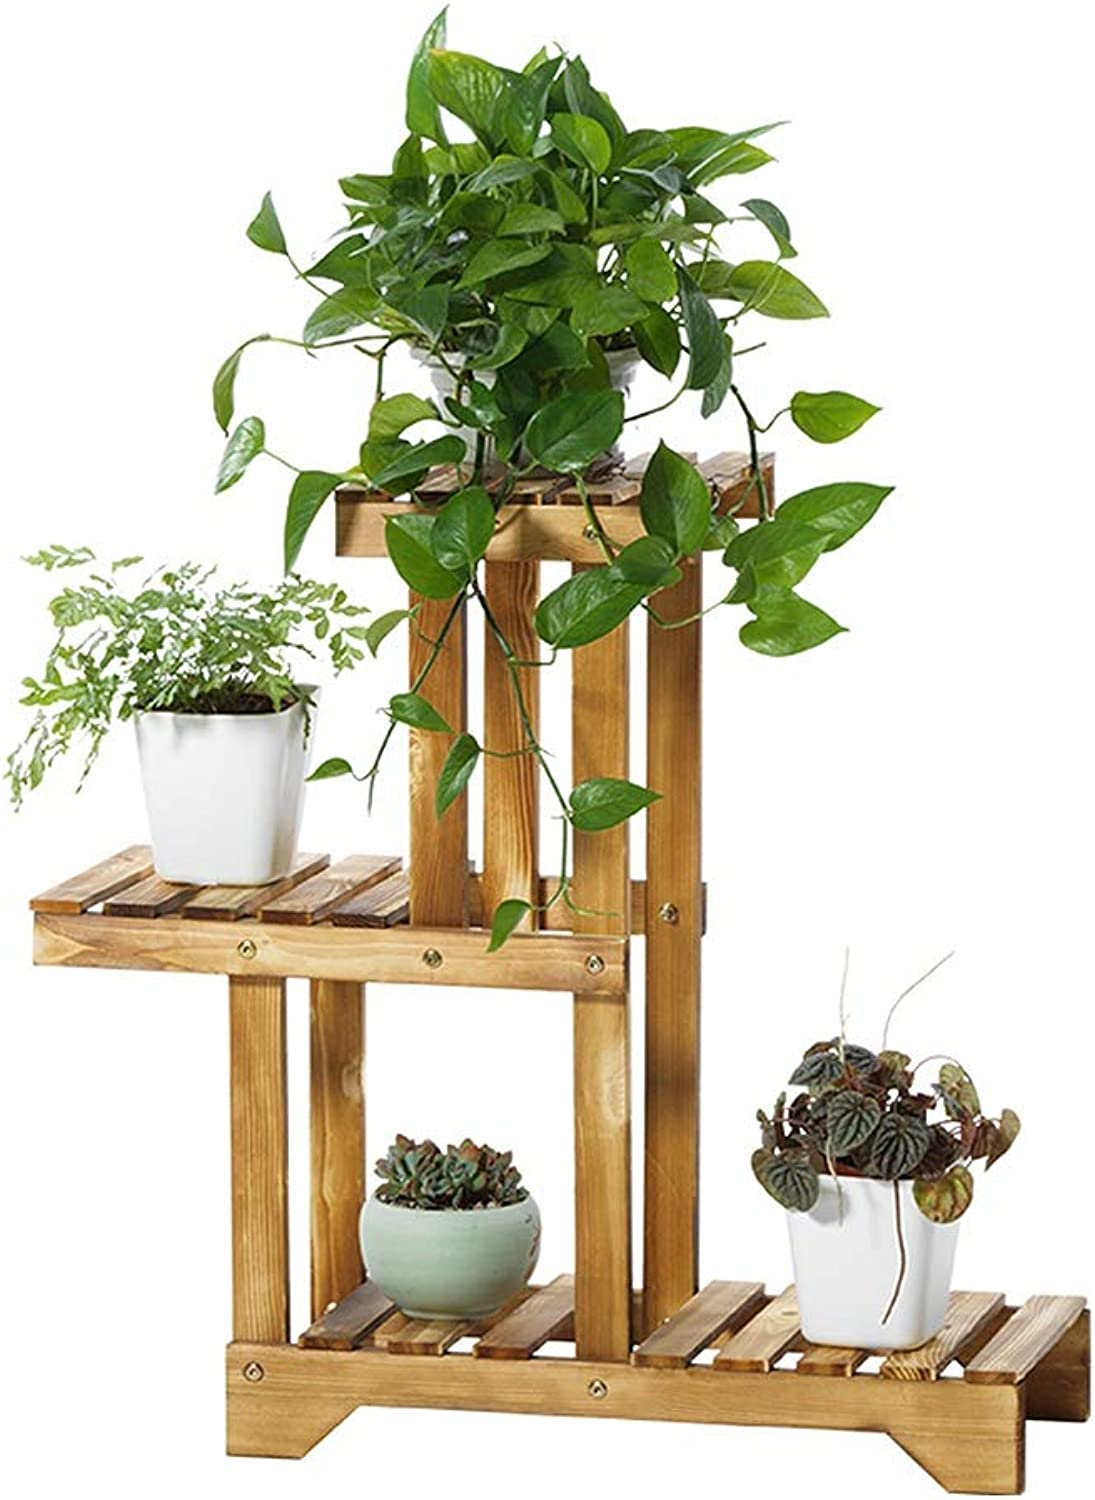 Solid Wood 3 Tier Plant Stand, Indoor Outdoor Decorative Plant Stands, 0 Formaldehyde, Waterproof, Antisepsis, Mildew